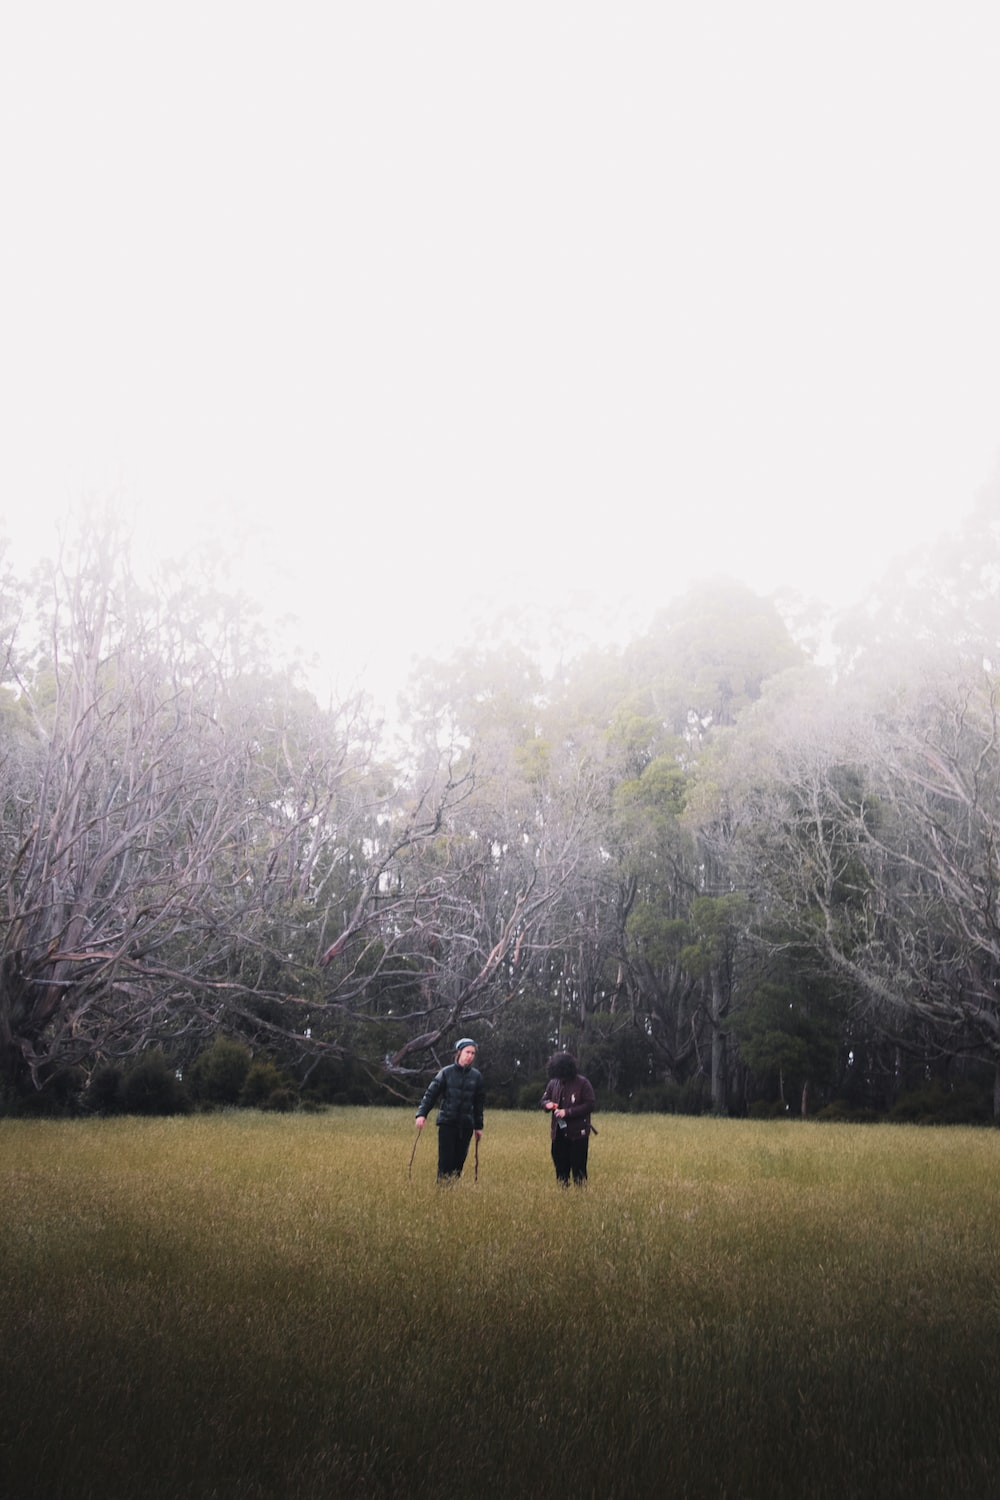 man and woman walking on green grass field surrounded by trees during daytime